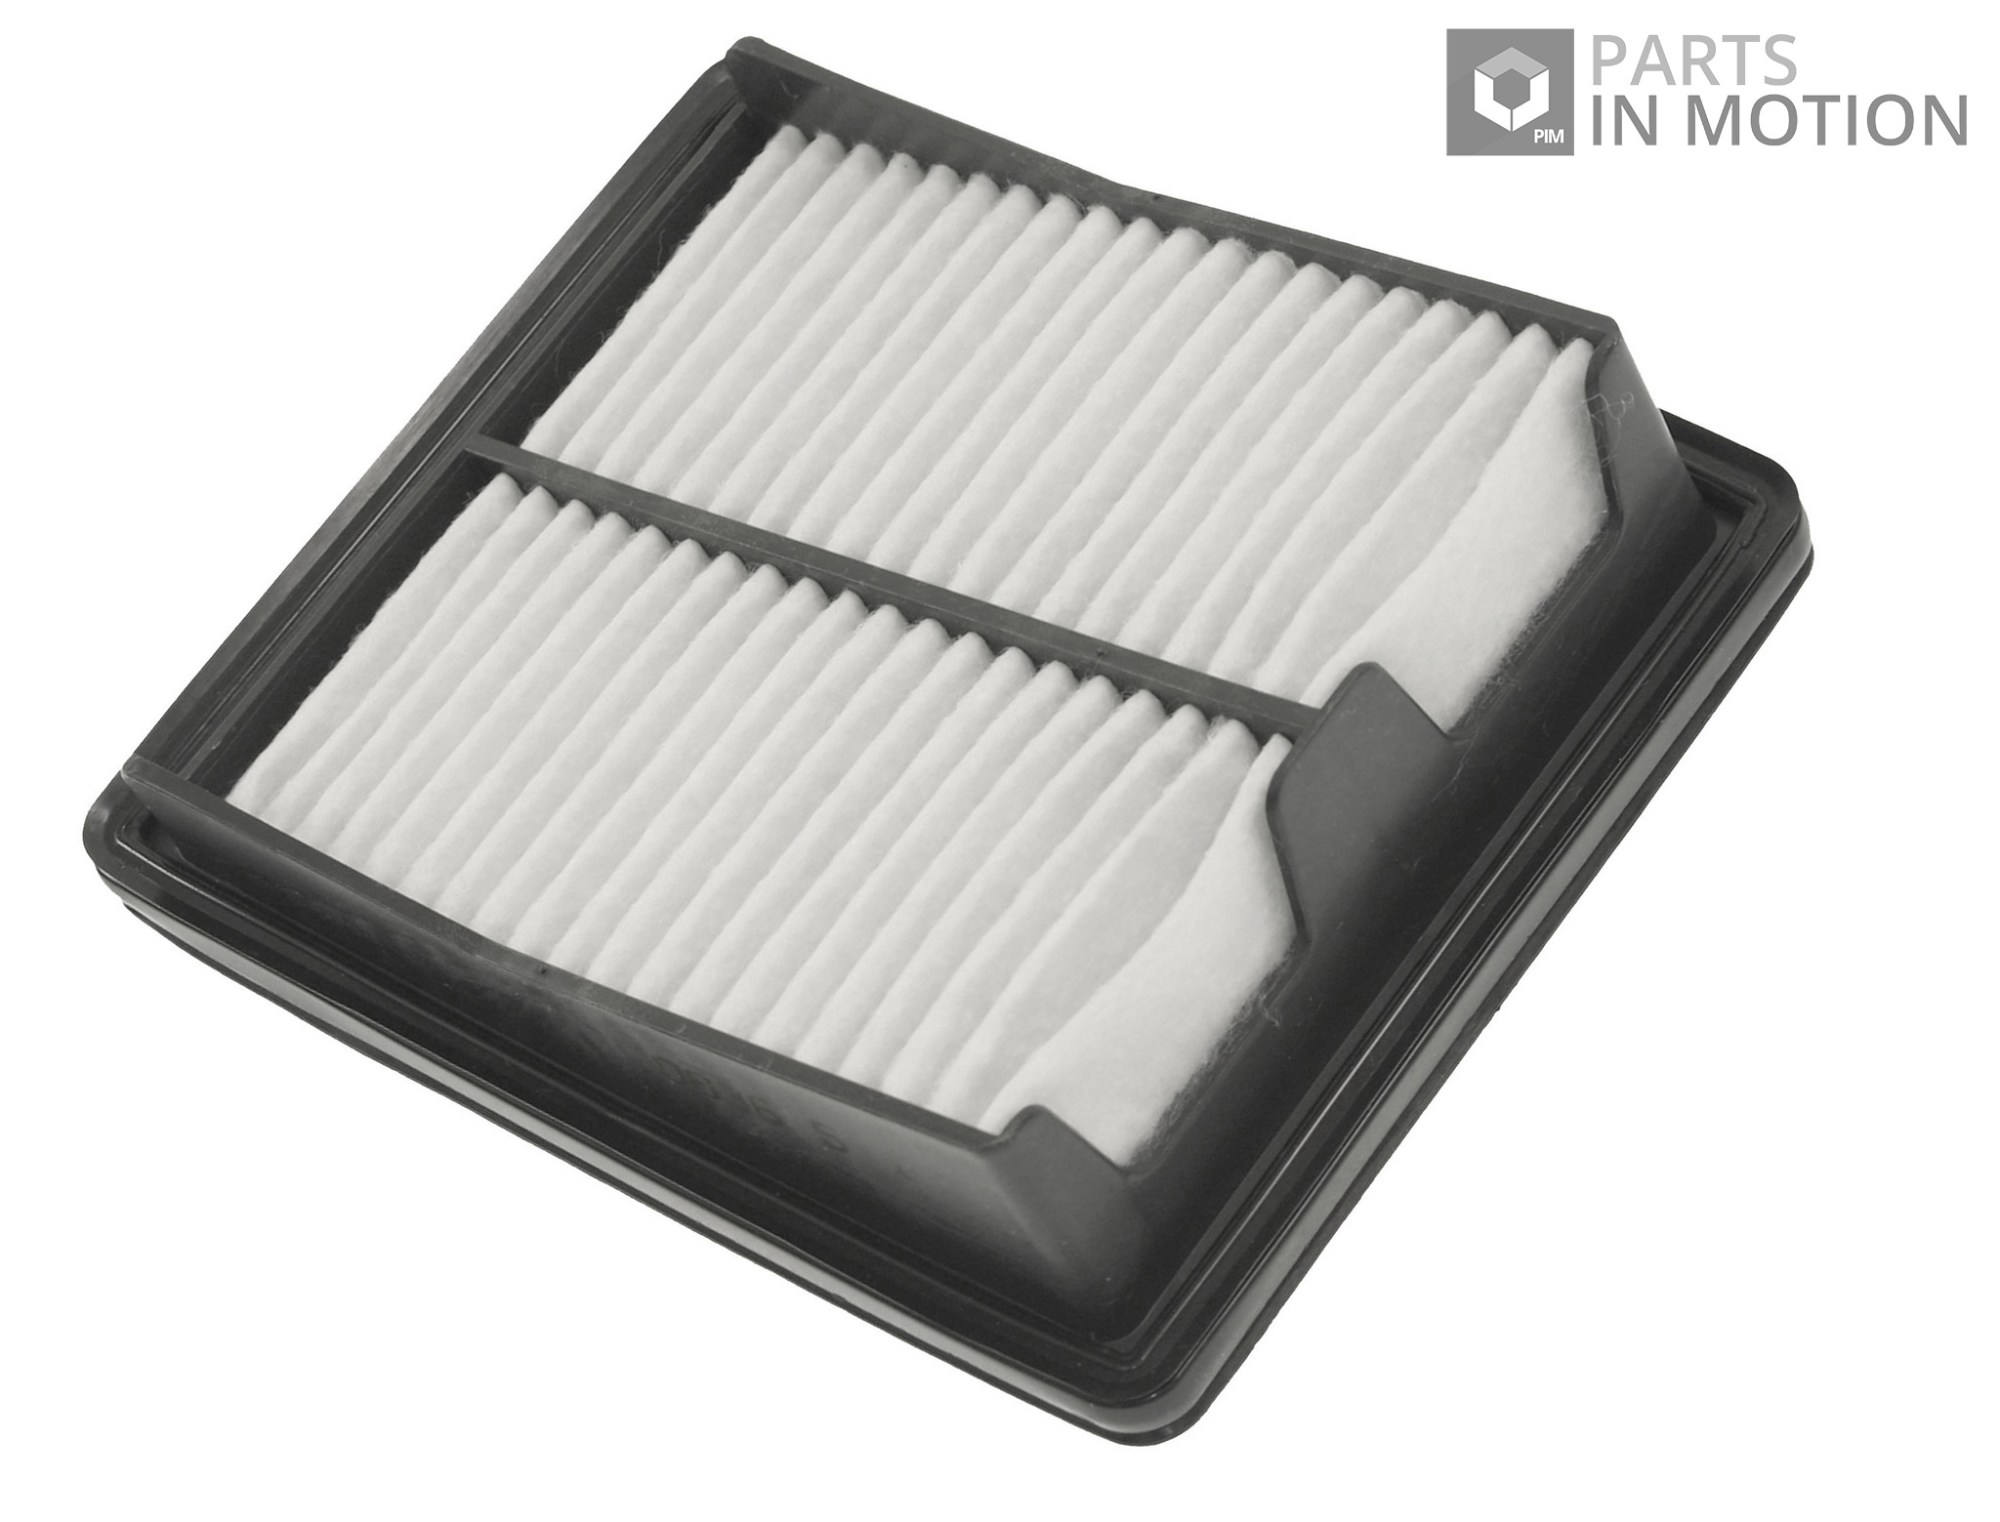 hight resolution of car parts air intake fuel delivery air filter fits honda jazz ge3 1 4 06 to